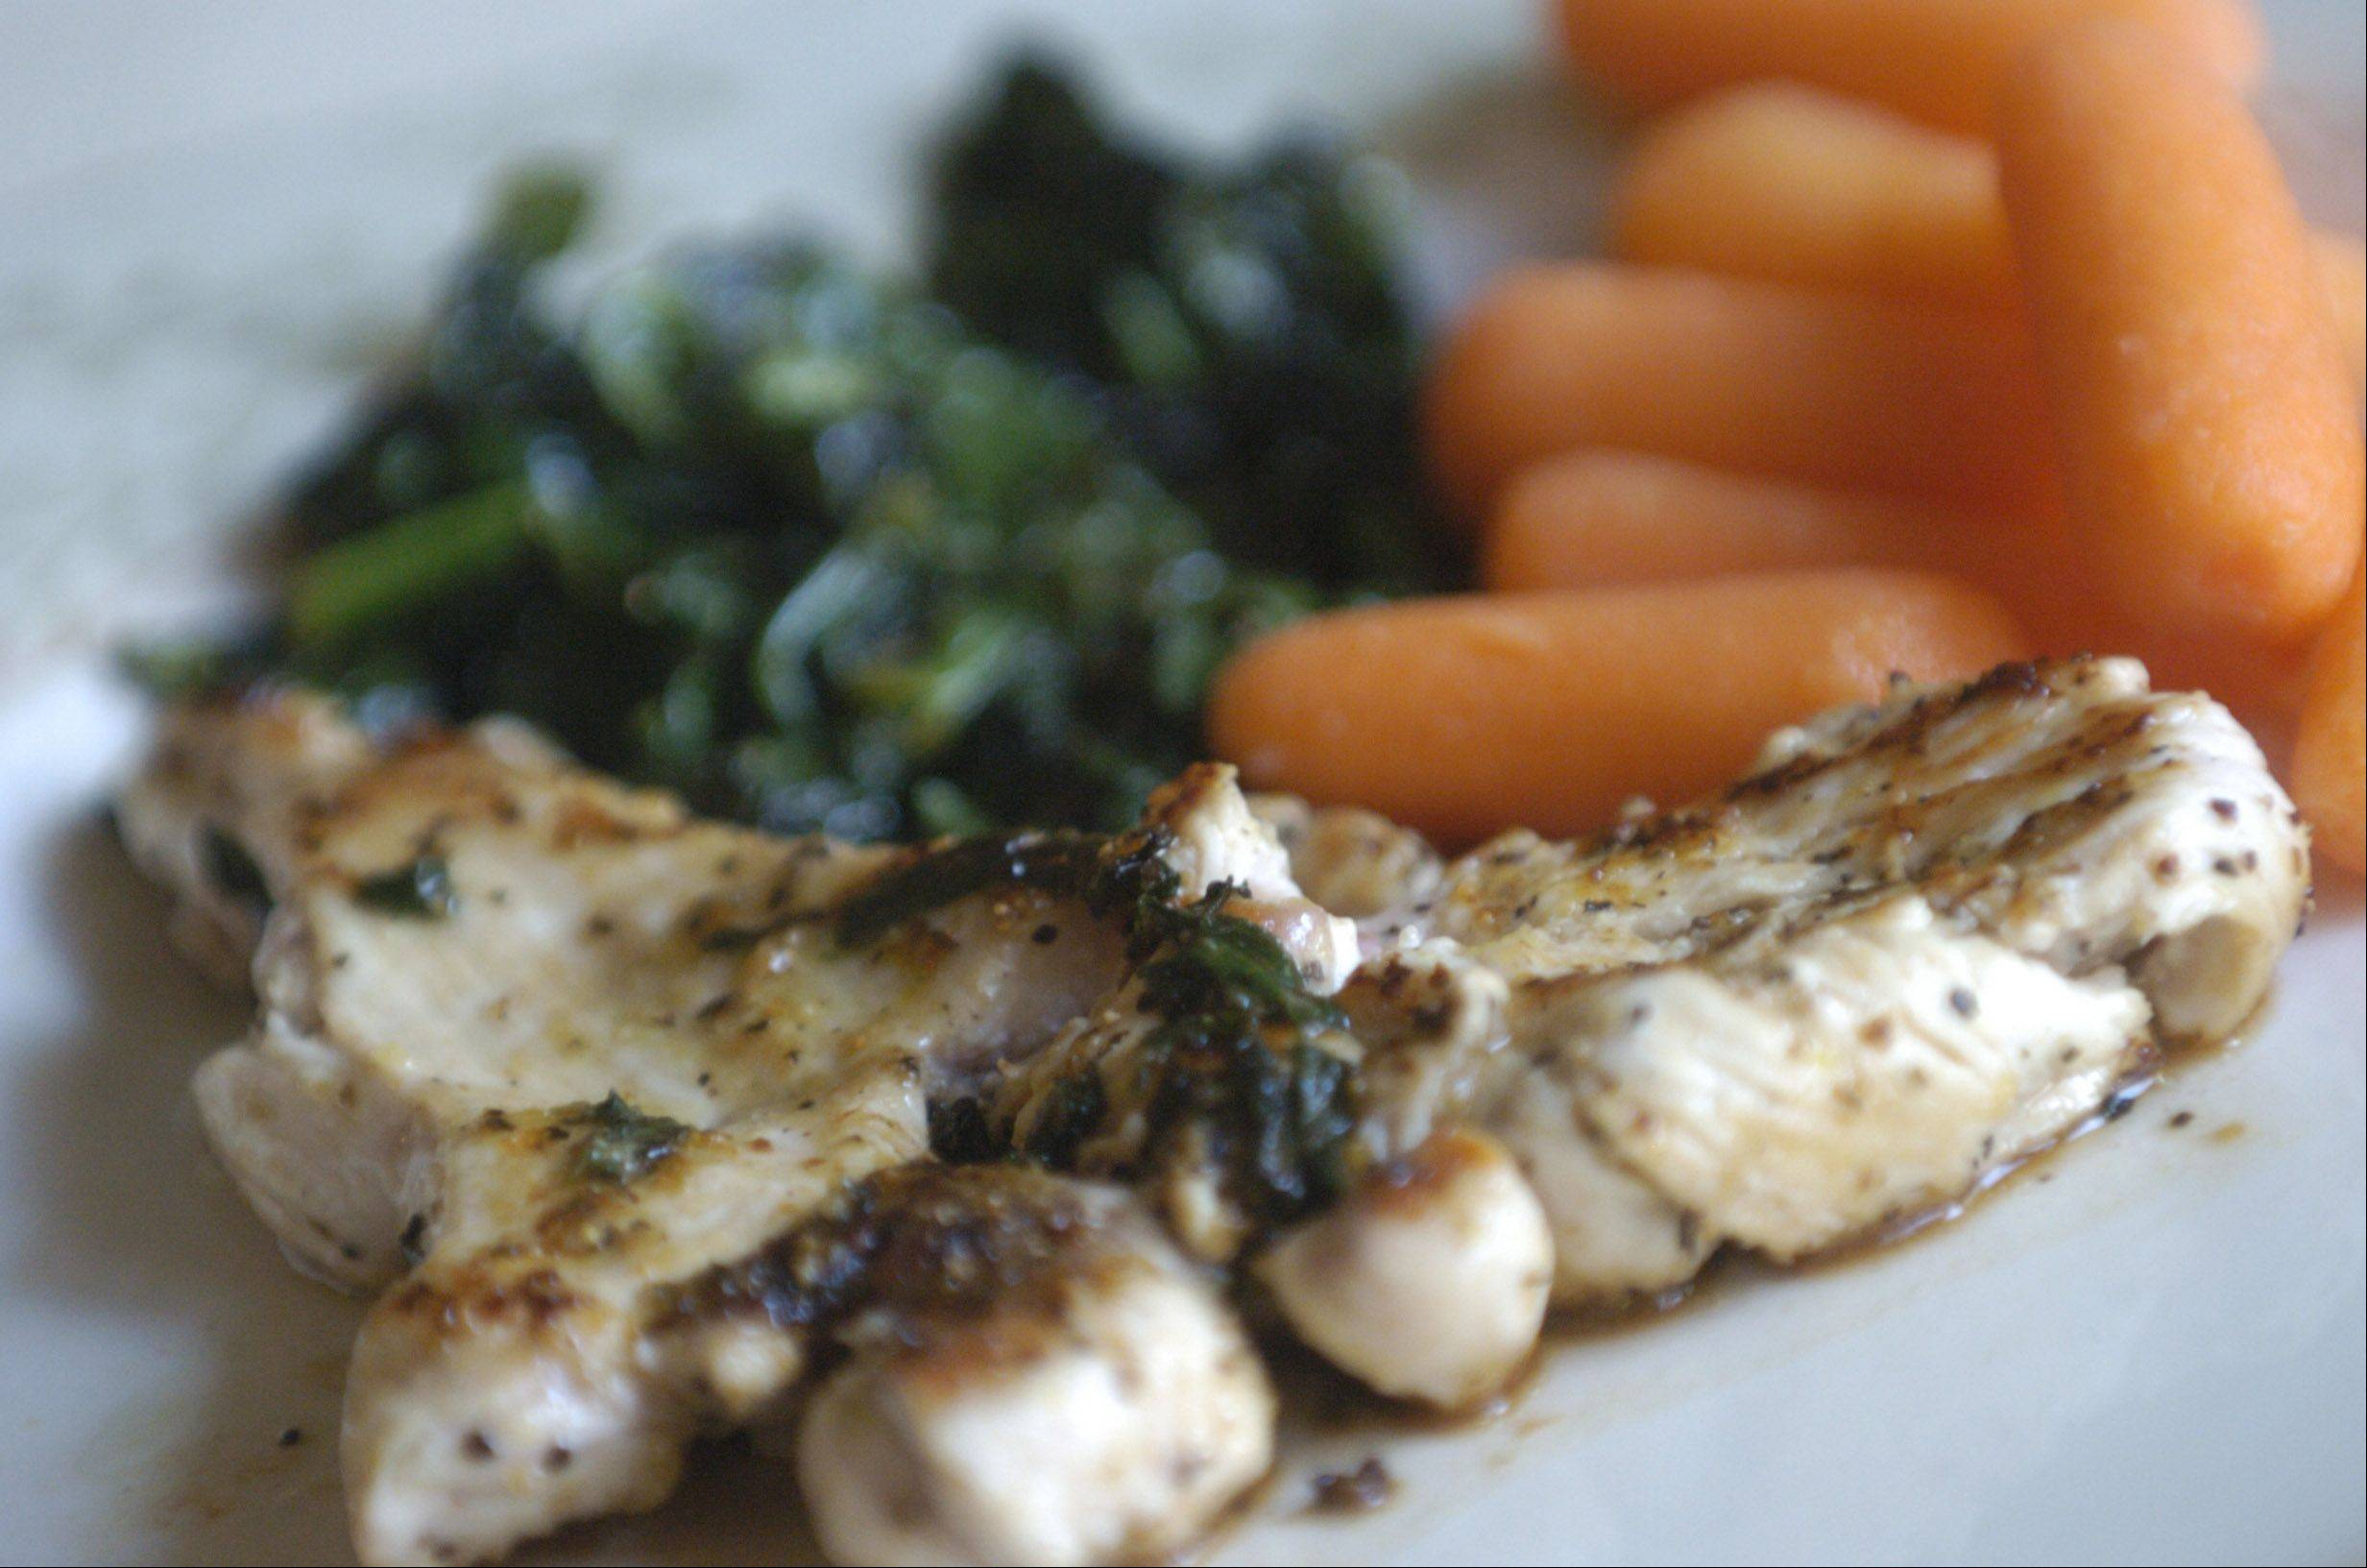 JOE LEWNARD/jlewnard@dailyherald.comTom Hampson's healthy lunch features a chicken breast served with spinach and baby carrots.